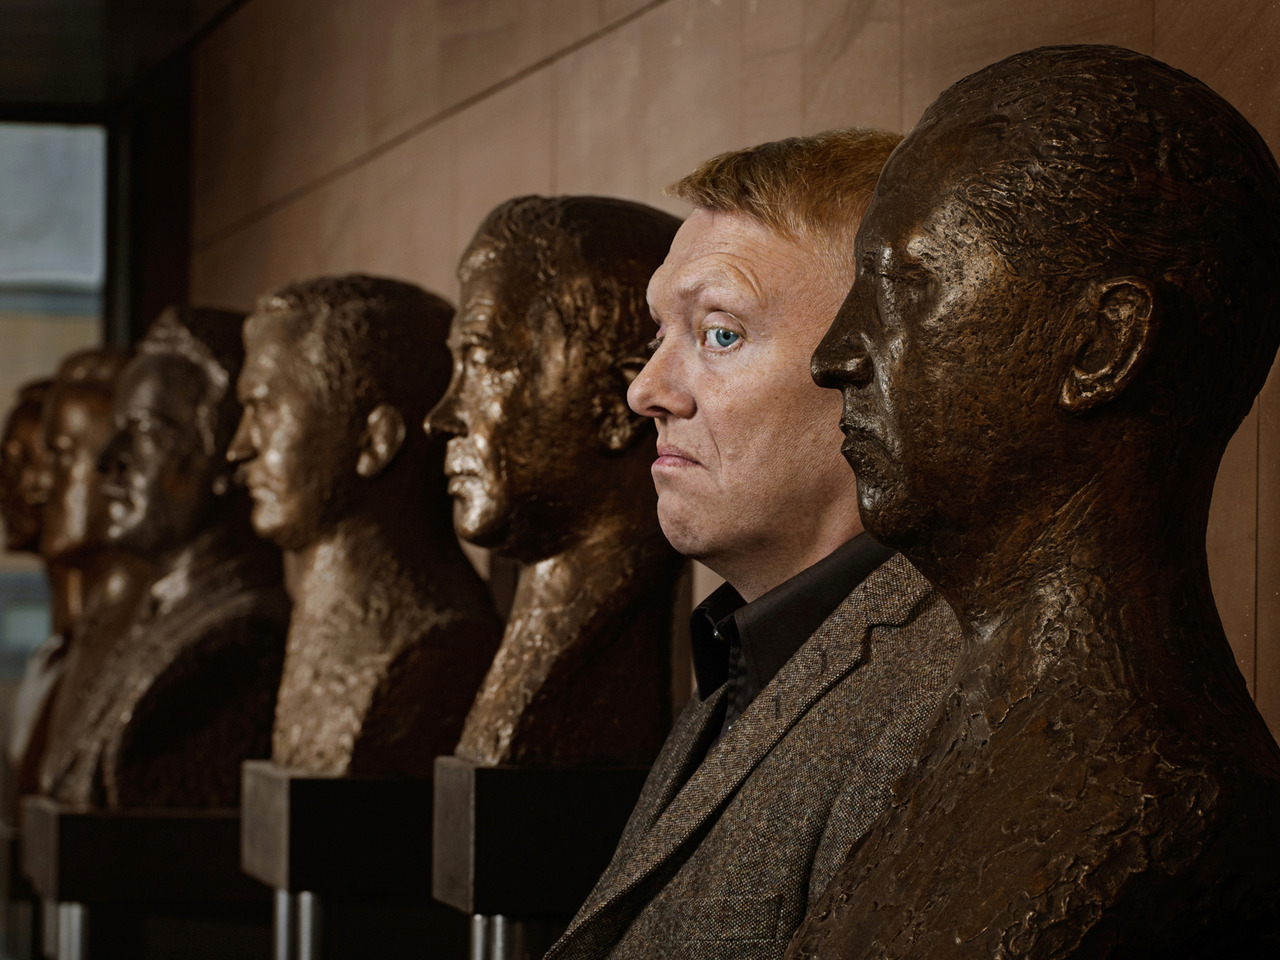 Jon_Gnarr_Statues_credits_http://magg.is/